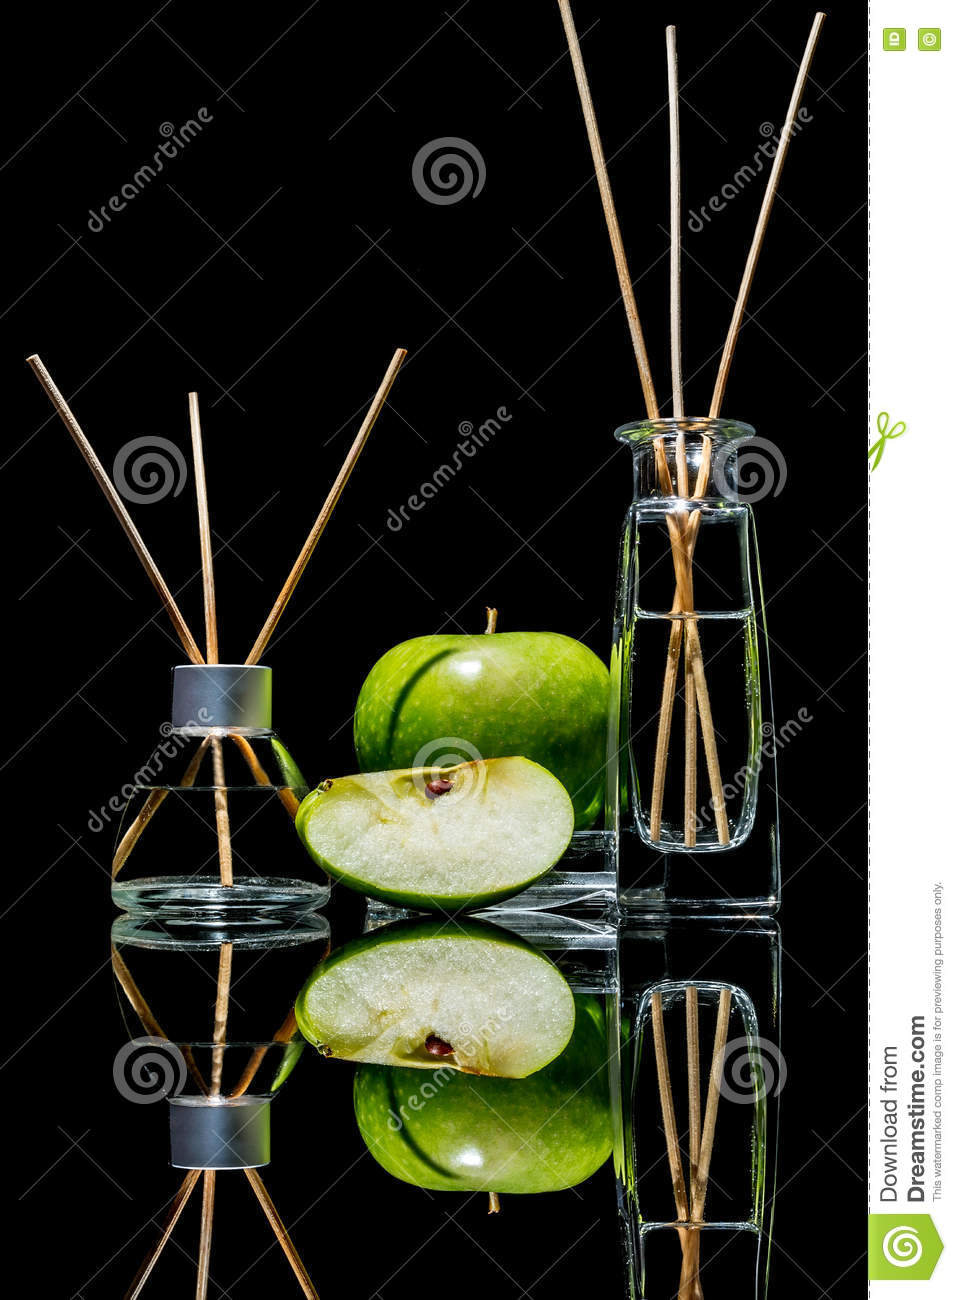 Air Fresheners In A Glass Jars With Sticks And Lemon